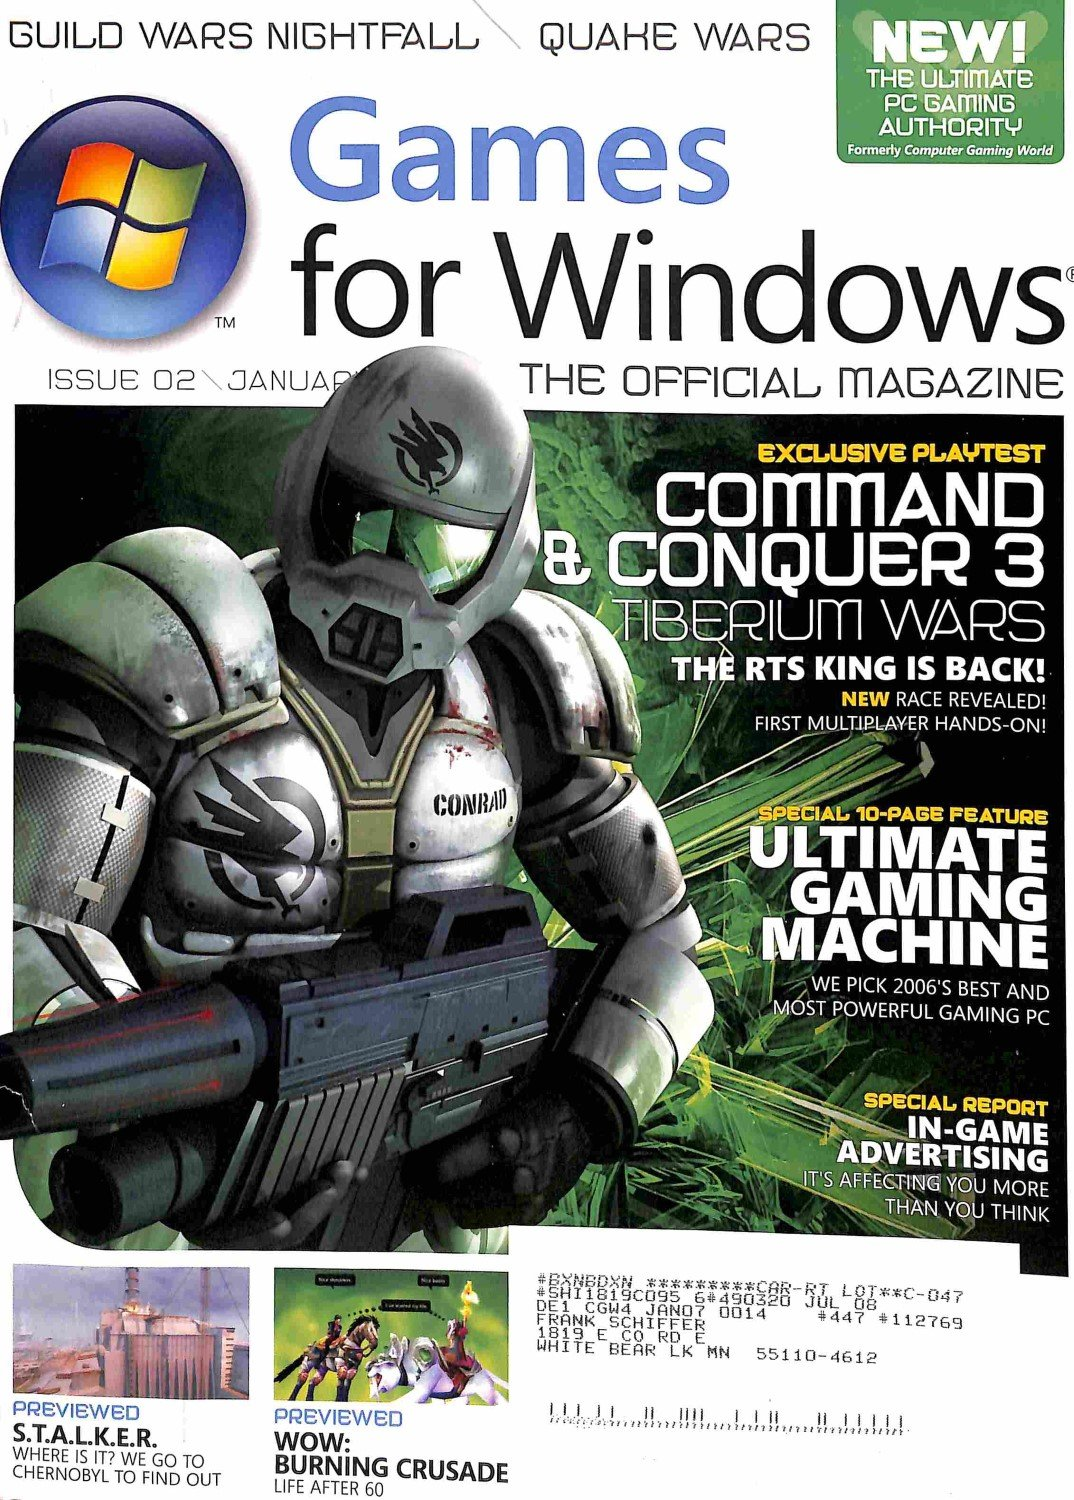 GAMES FOR WINDOWS JANUARY 2007 (THE OFFICIAL MAGAZINE, 02) pdf